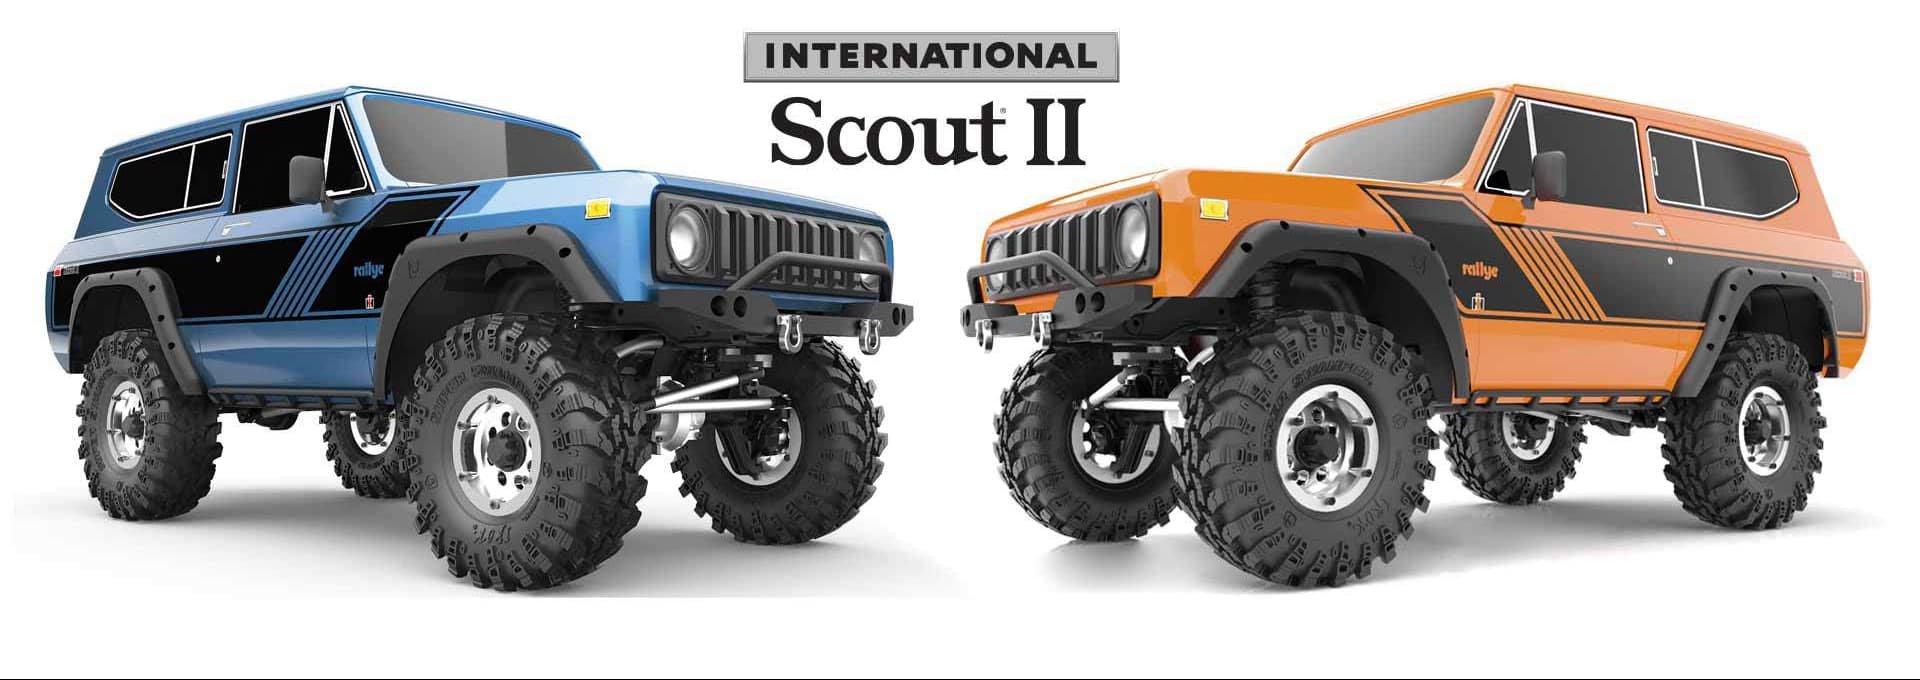 Redcat Racing GEN8 International Scout Highlights & Pricing Details